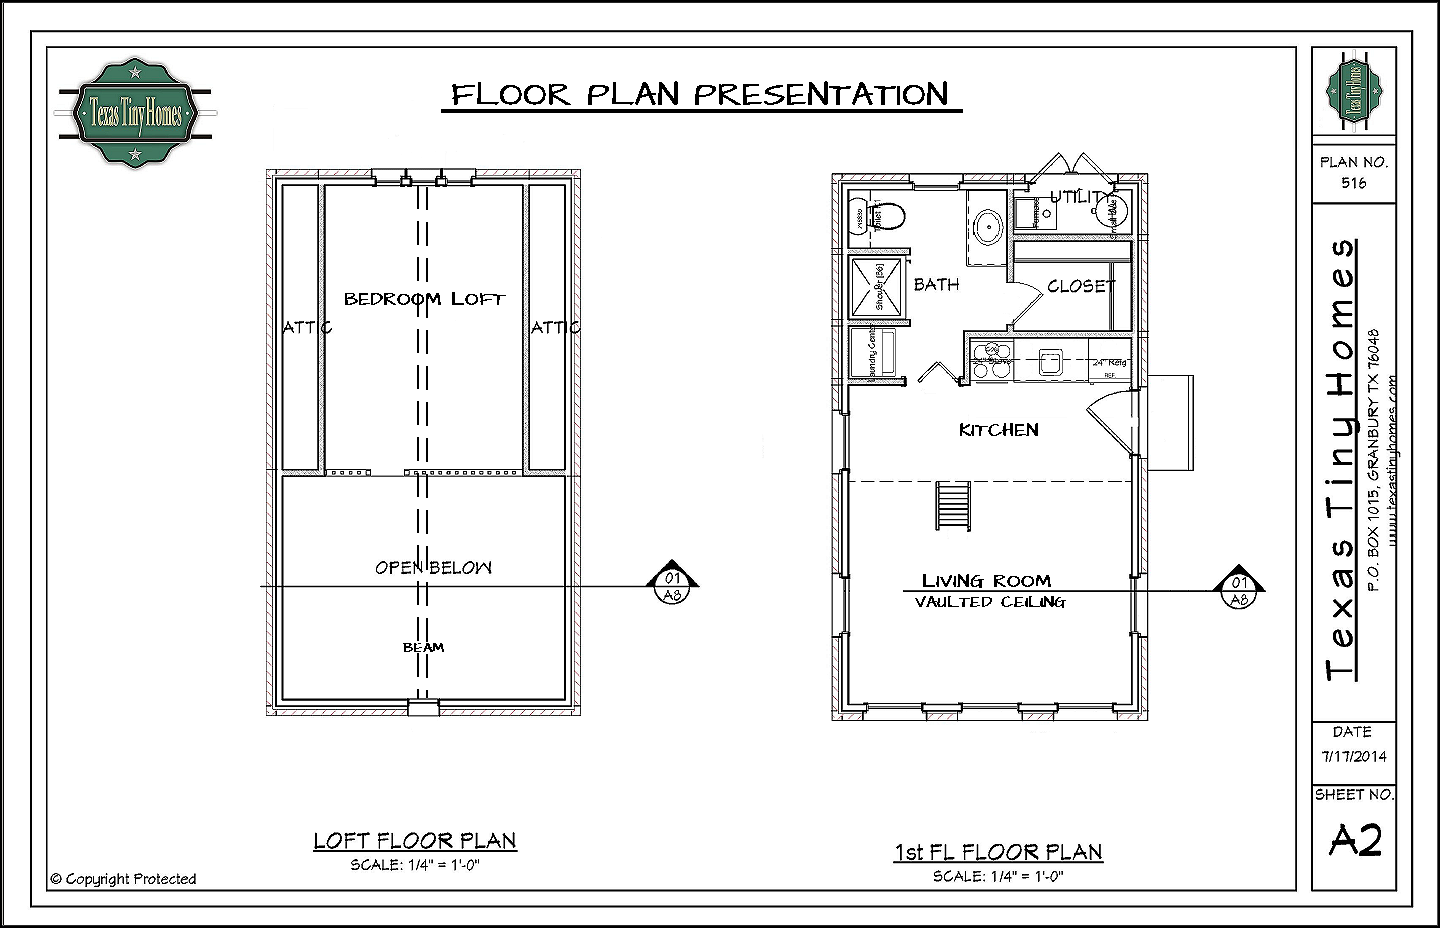 Texas tiny homes plan 516 for Floor plans texas